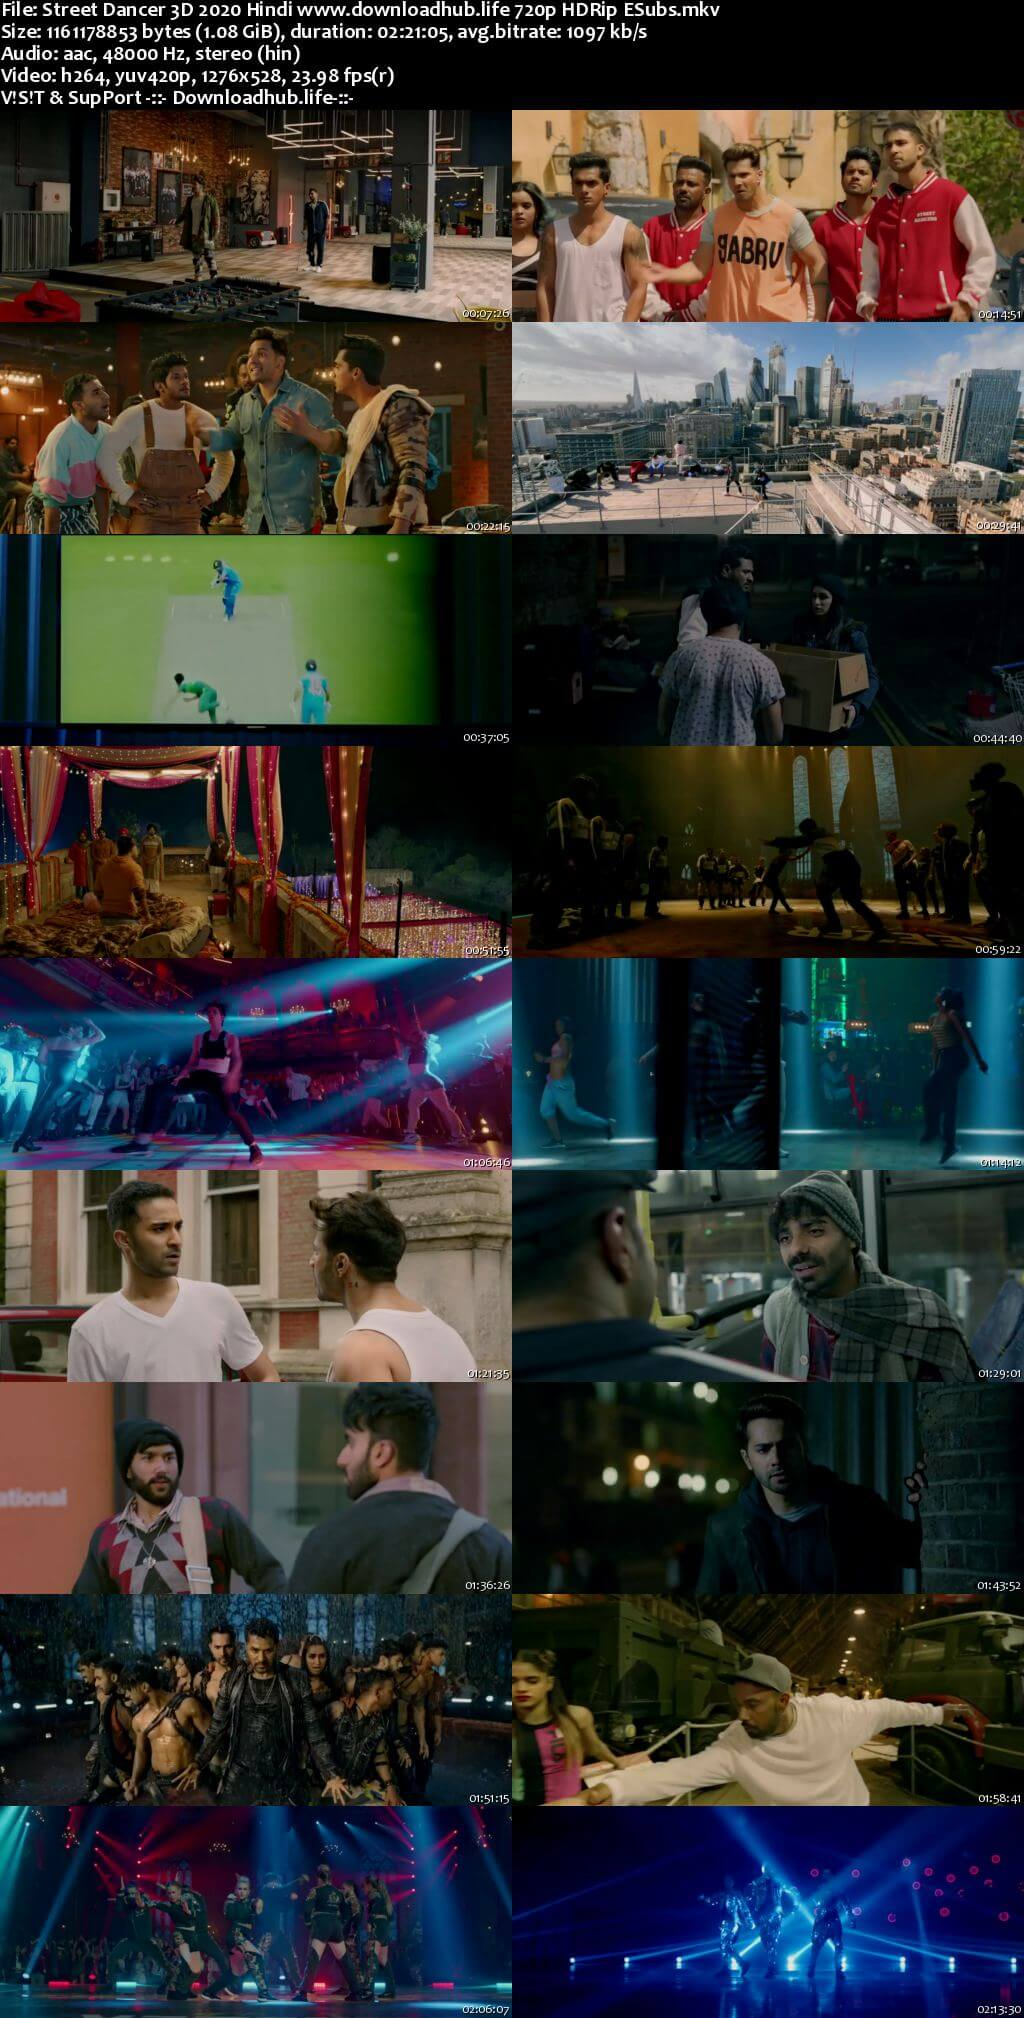 Street Dancer 3D 2020 Hindi 720p HDRip ESubs